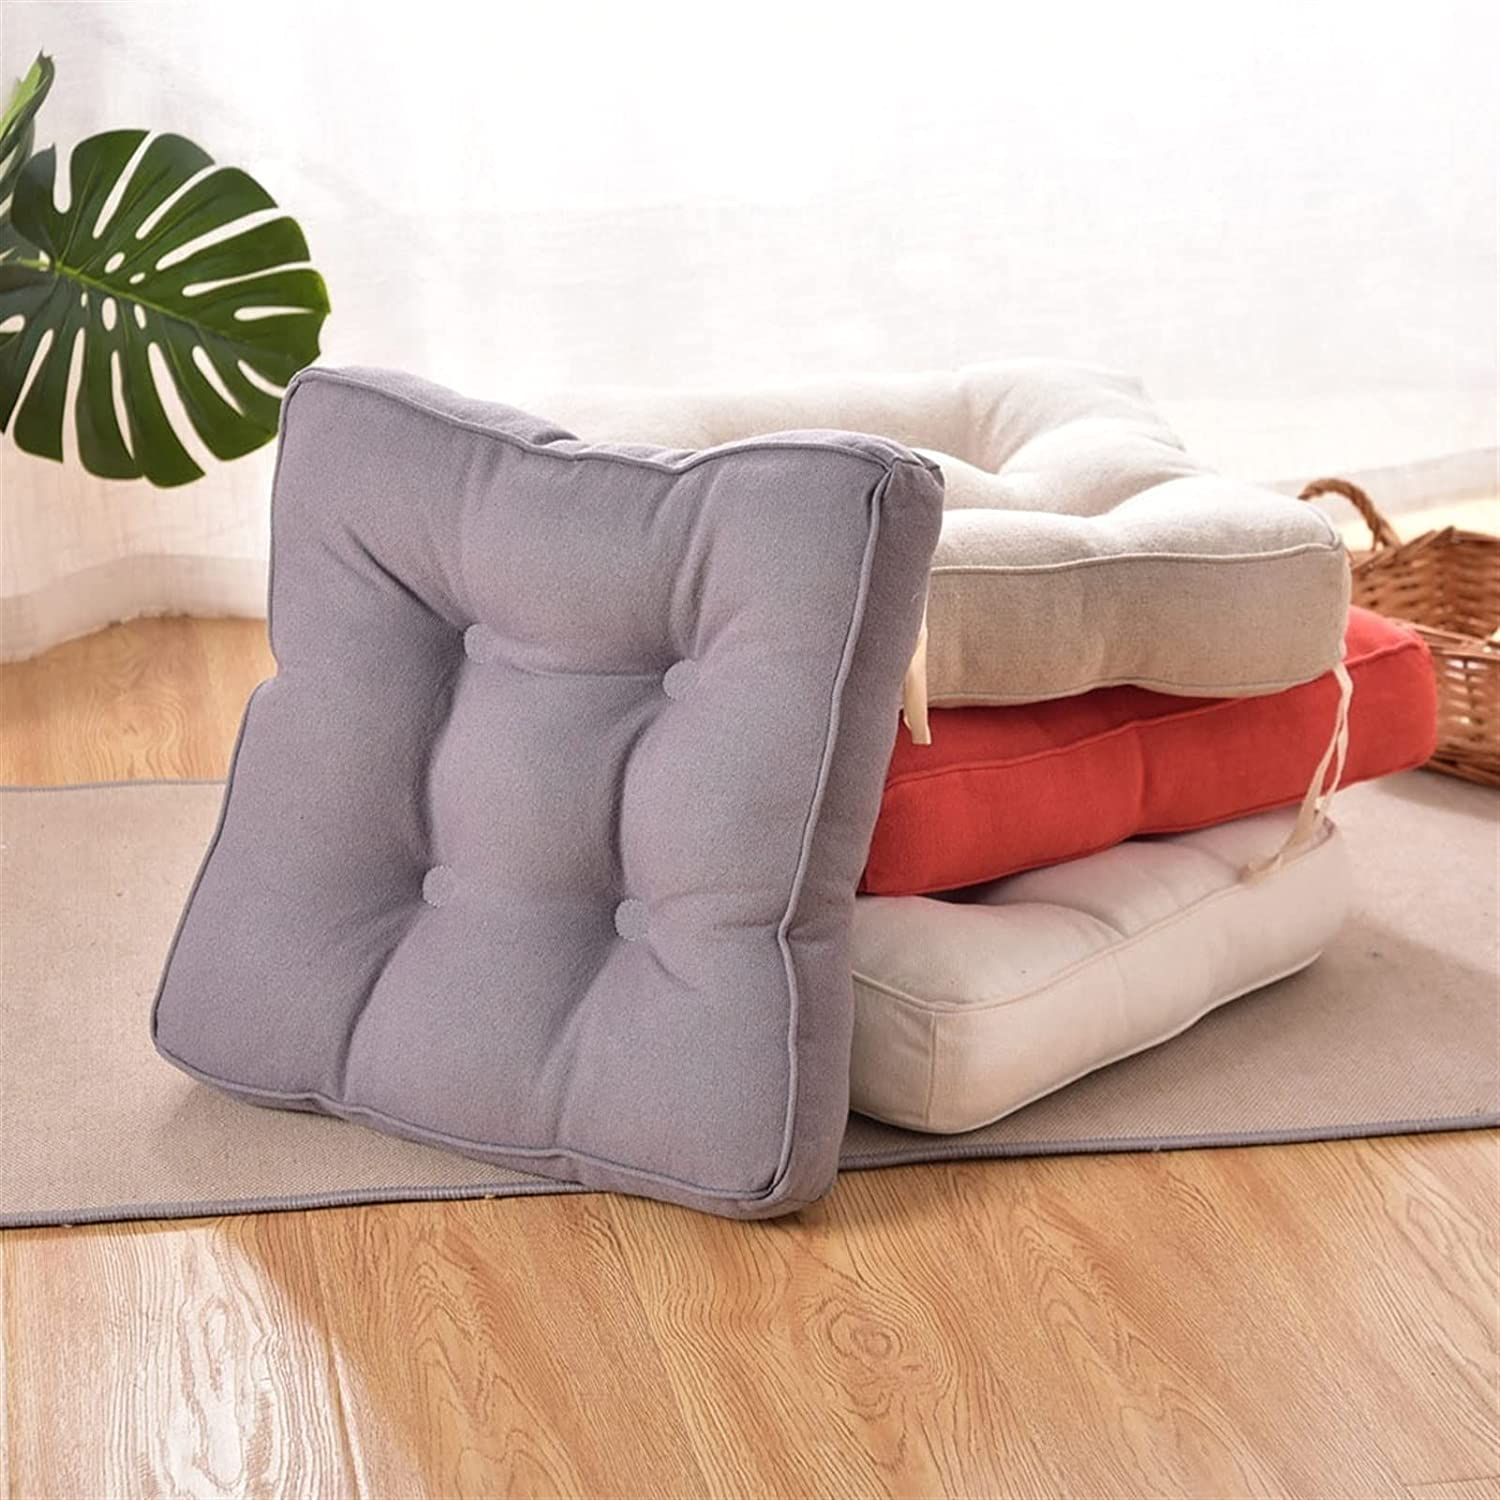 Outdoor Oakland Mall Garden Cushion 1PCS 40cm Square Back Seat Pad wit Chair Max 74% OFF